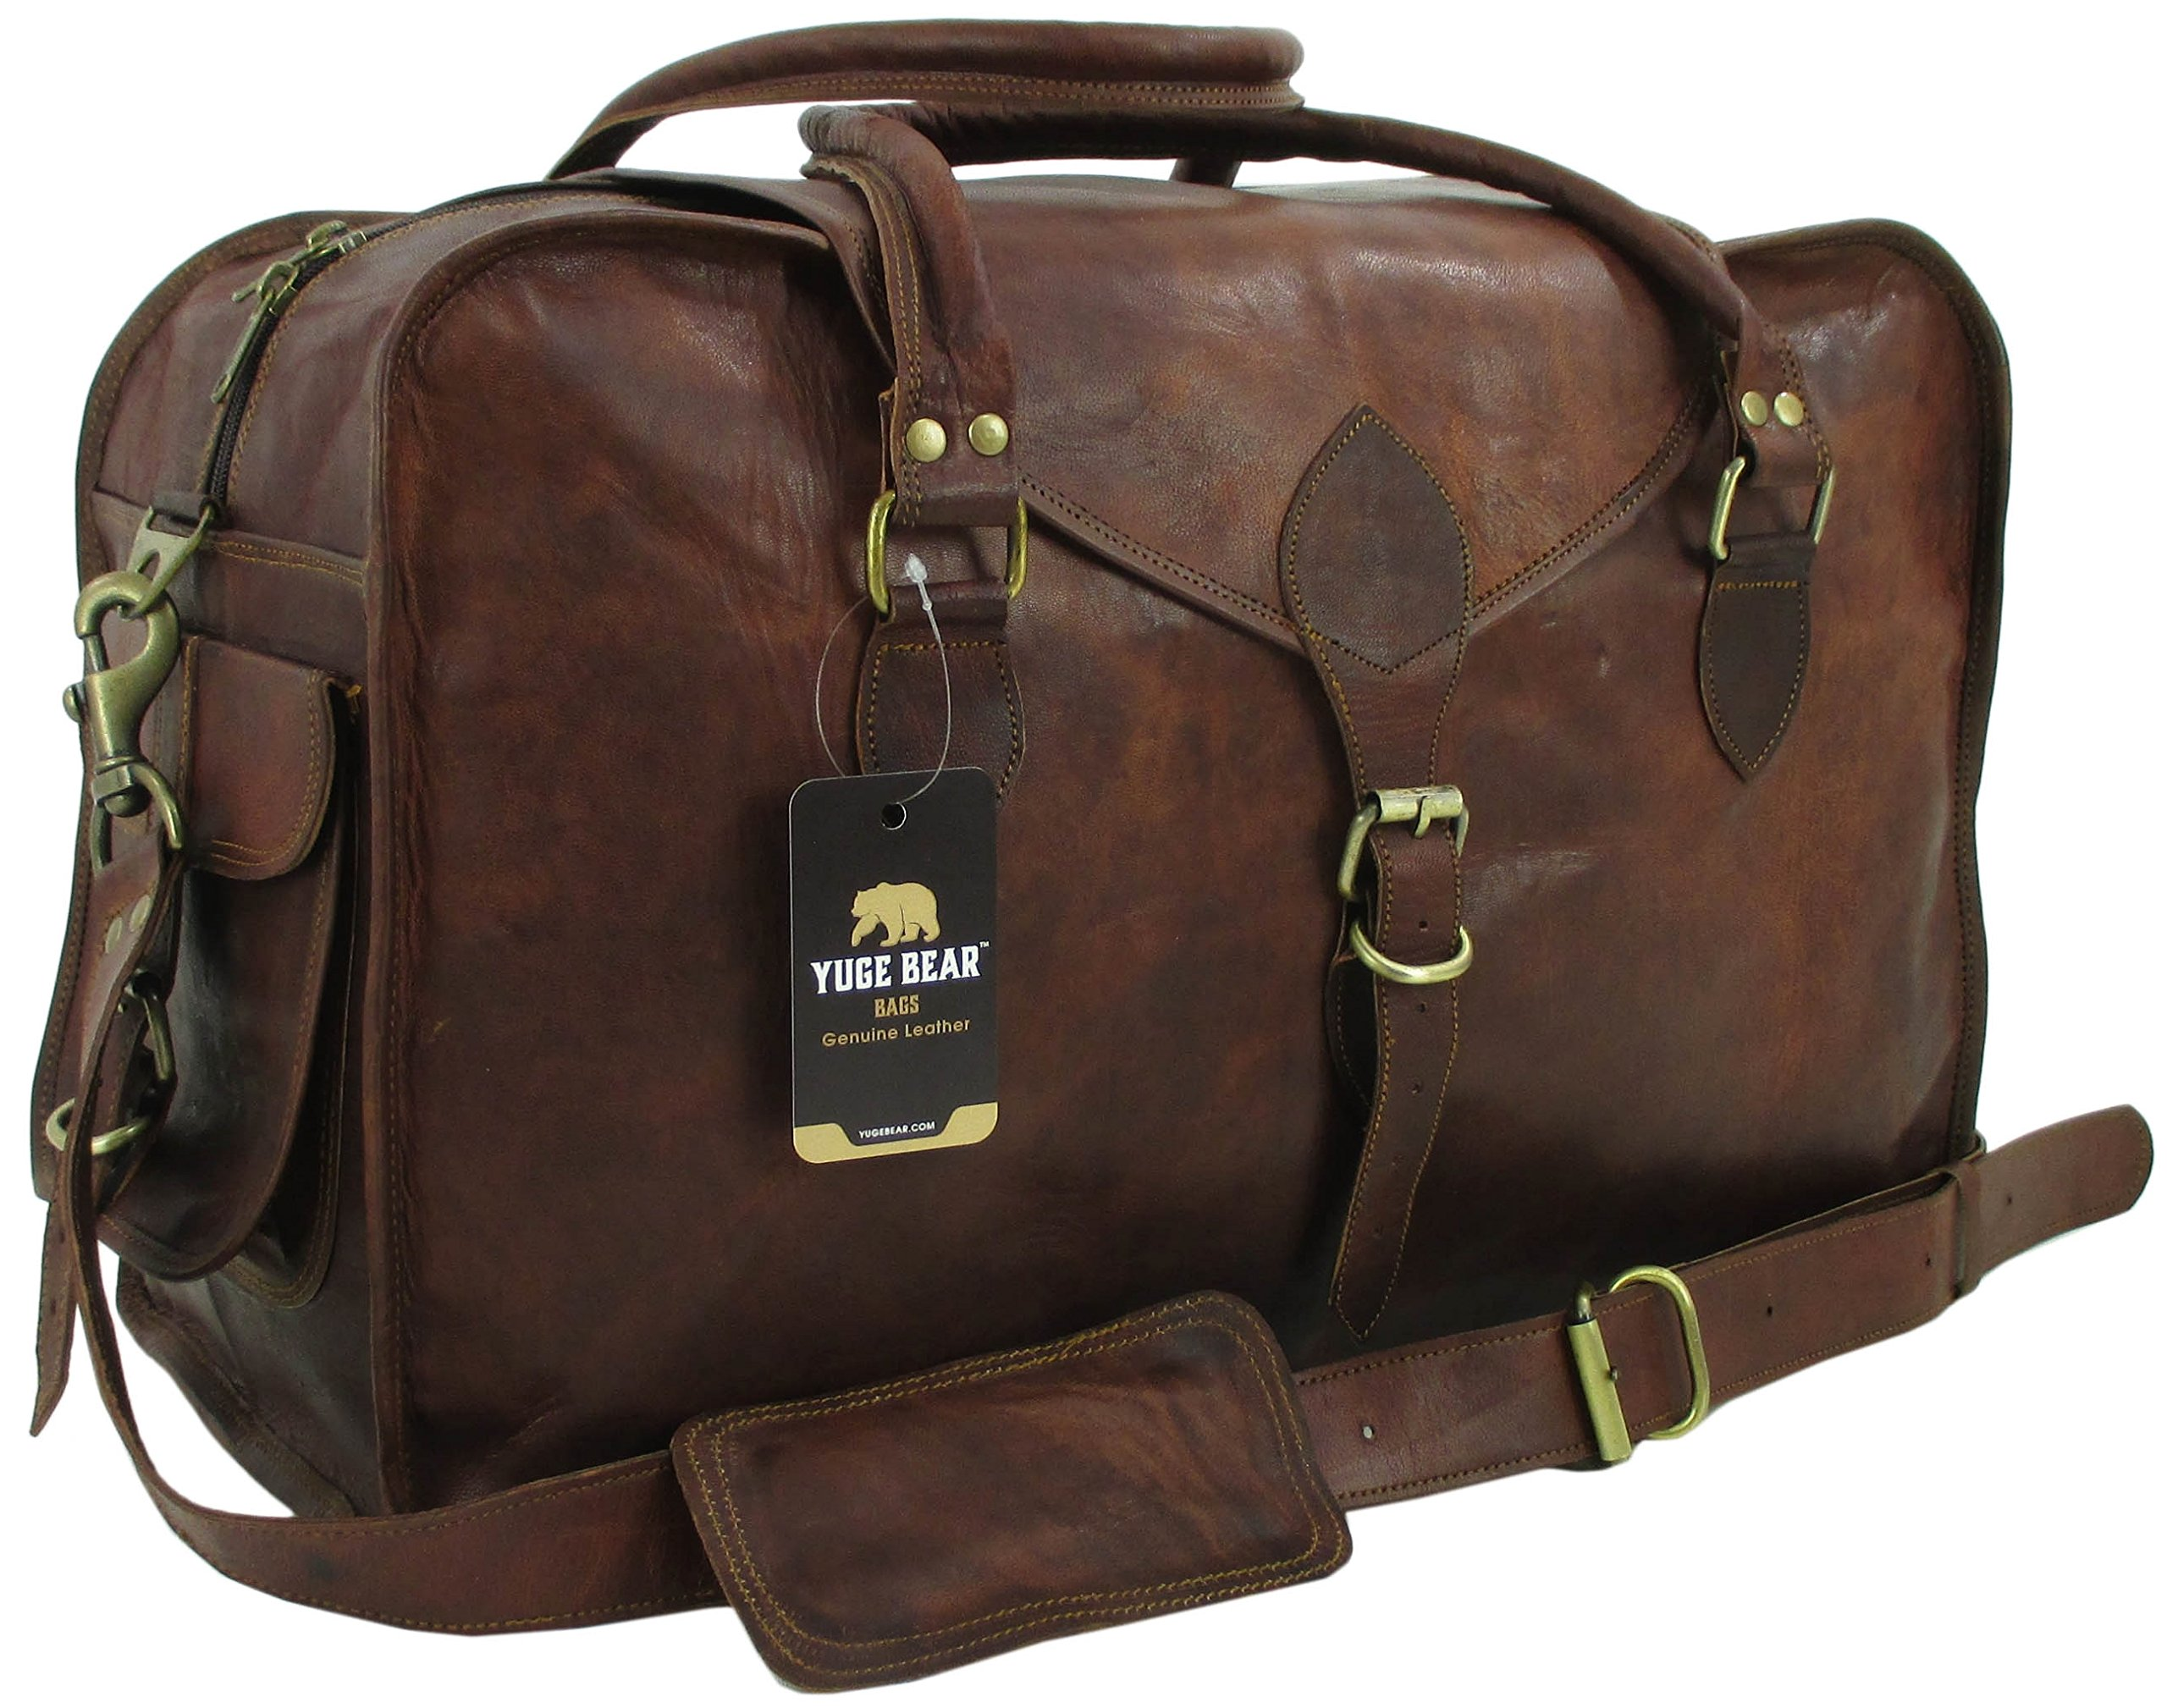 Yuge Bear 21'' C50 Vintage Carry On Travel Duffel Shoulder Suitcase by Genuine Leather Bag Shop